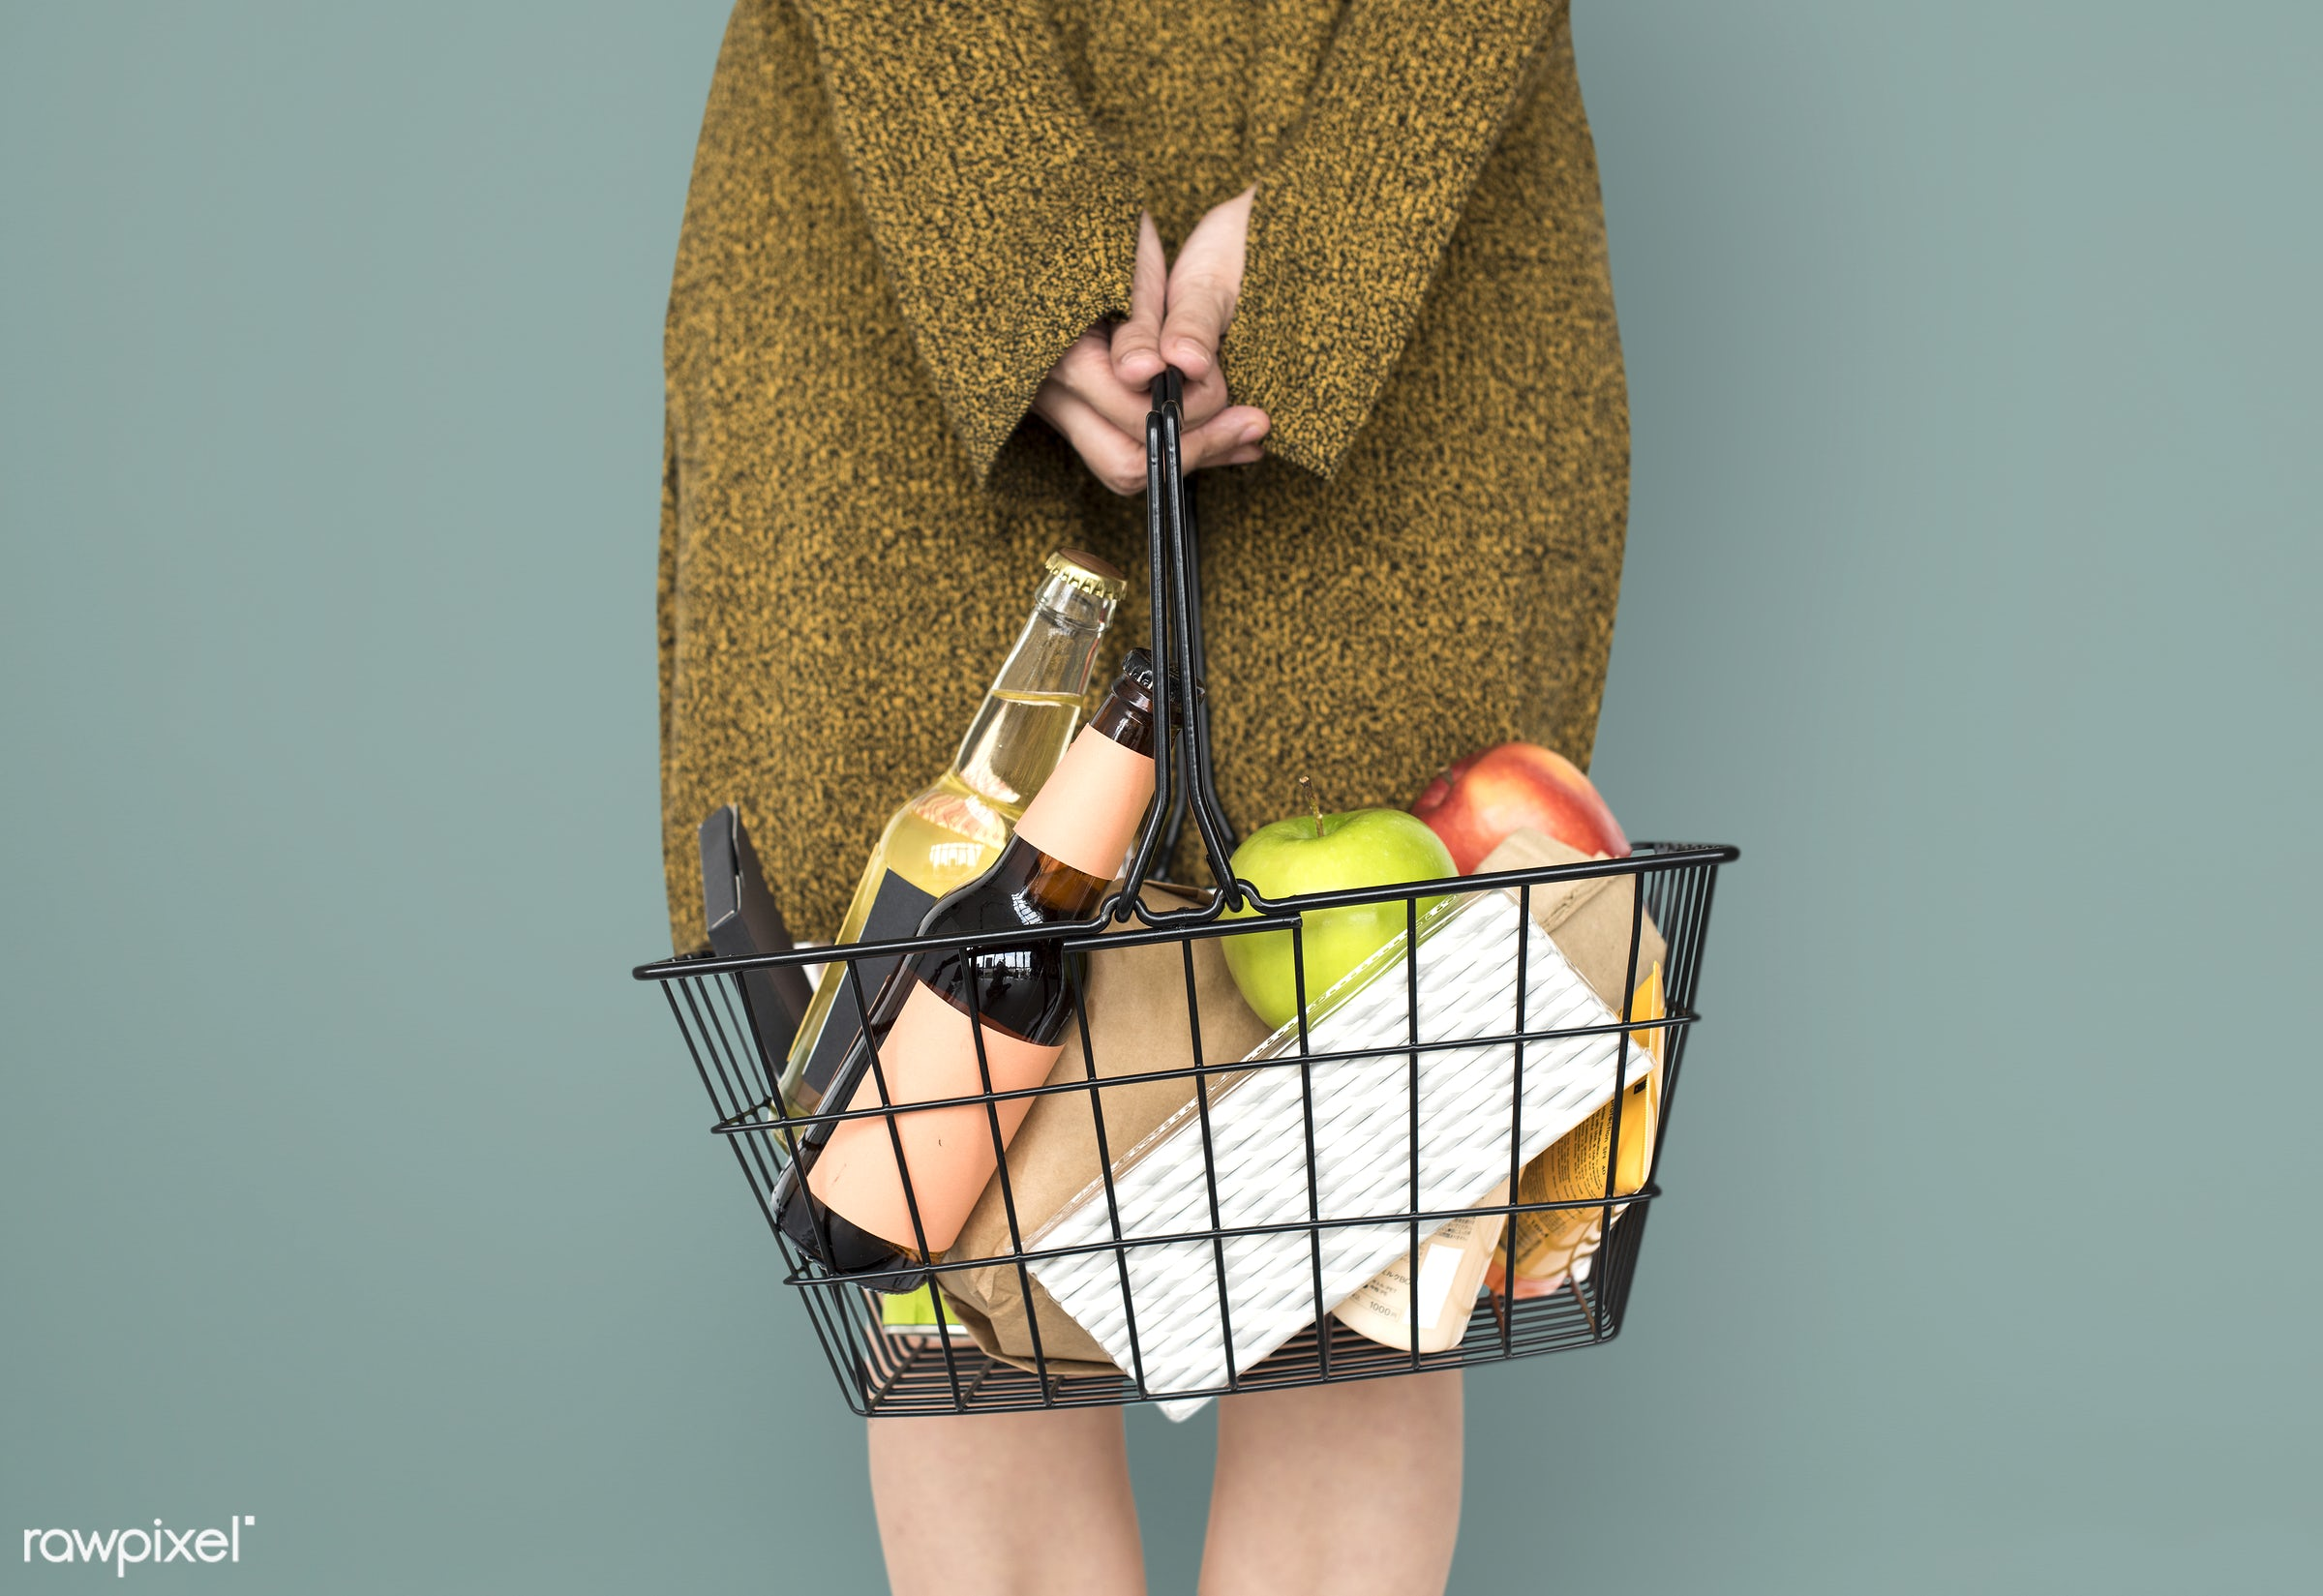 grocery, studio, person, goods, drinks, people, girl, carrying, solo, woman, casual, wine, isolated, fruit, household, green...